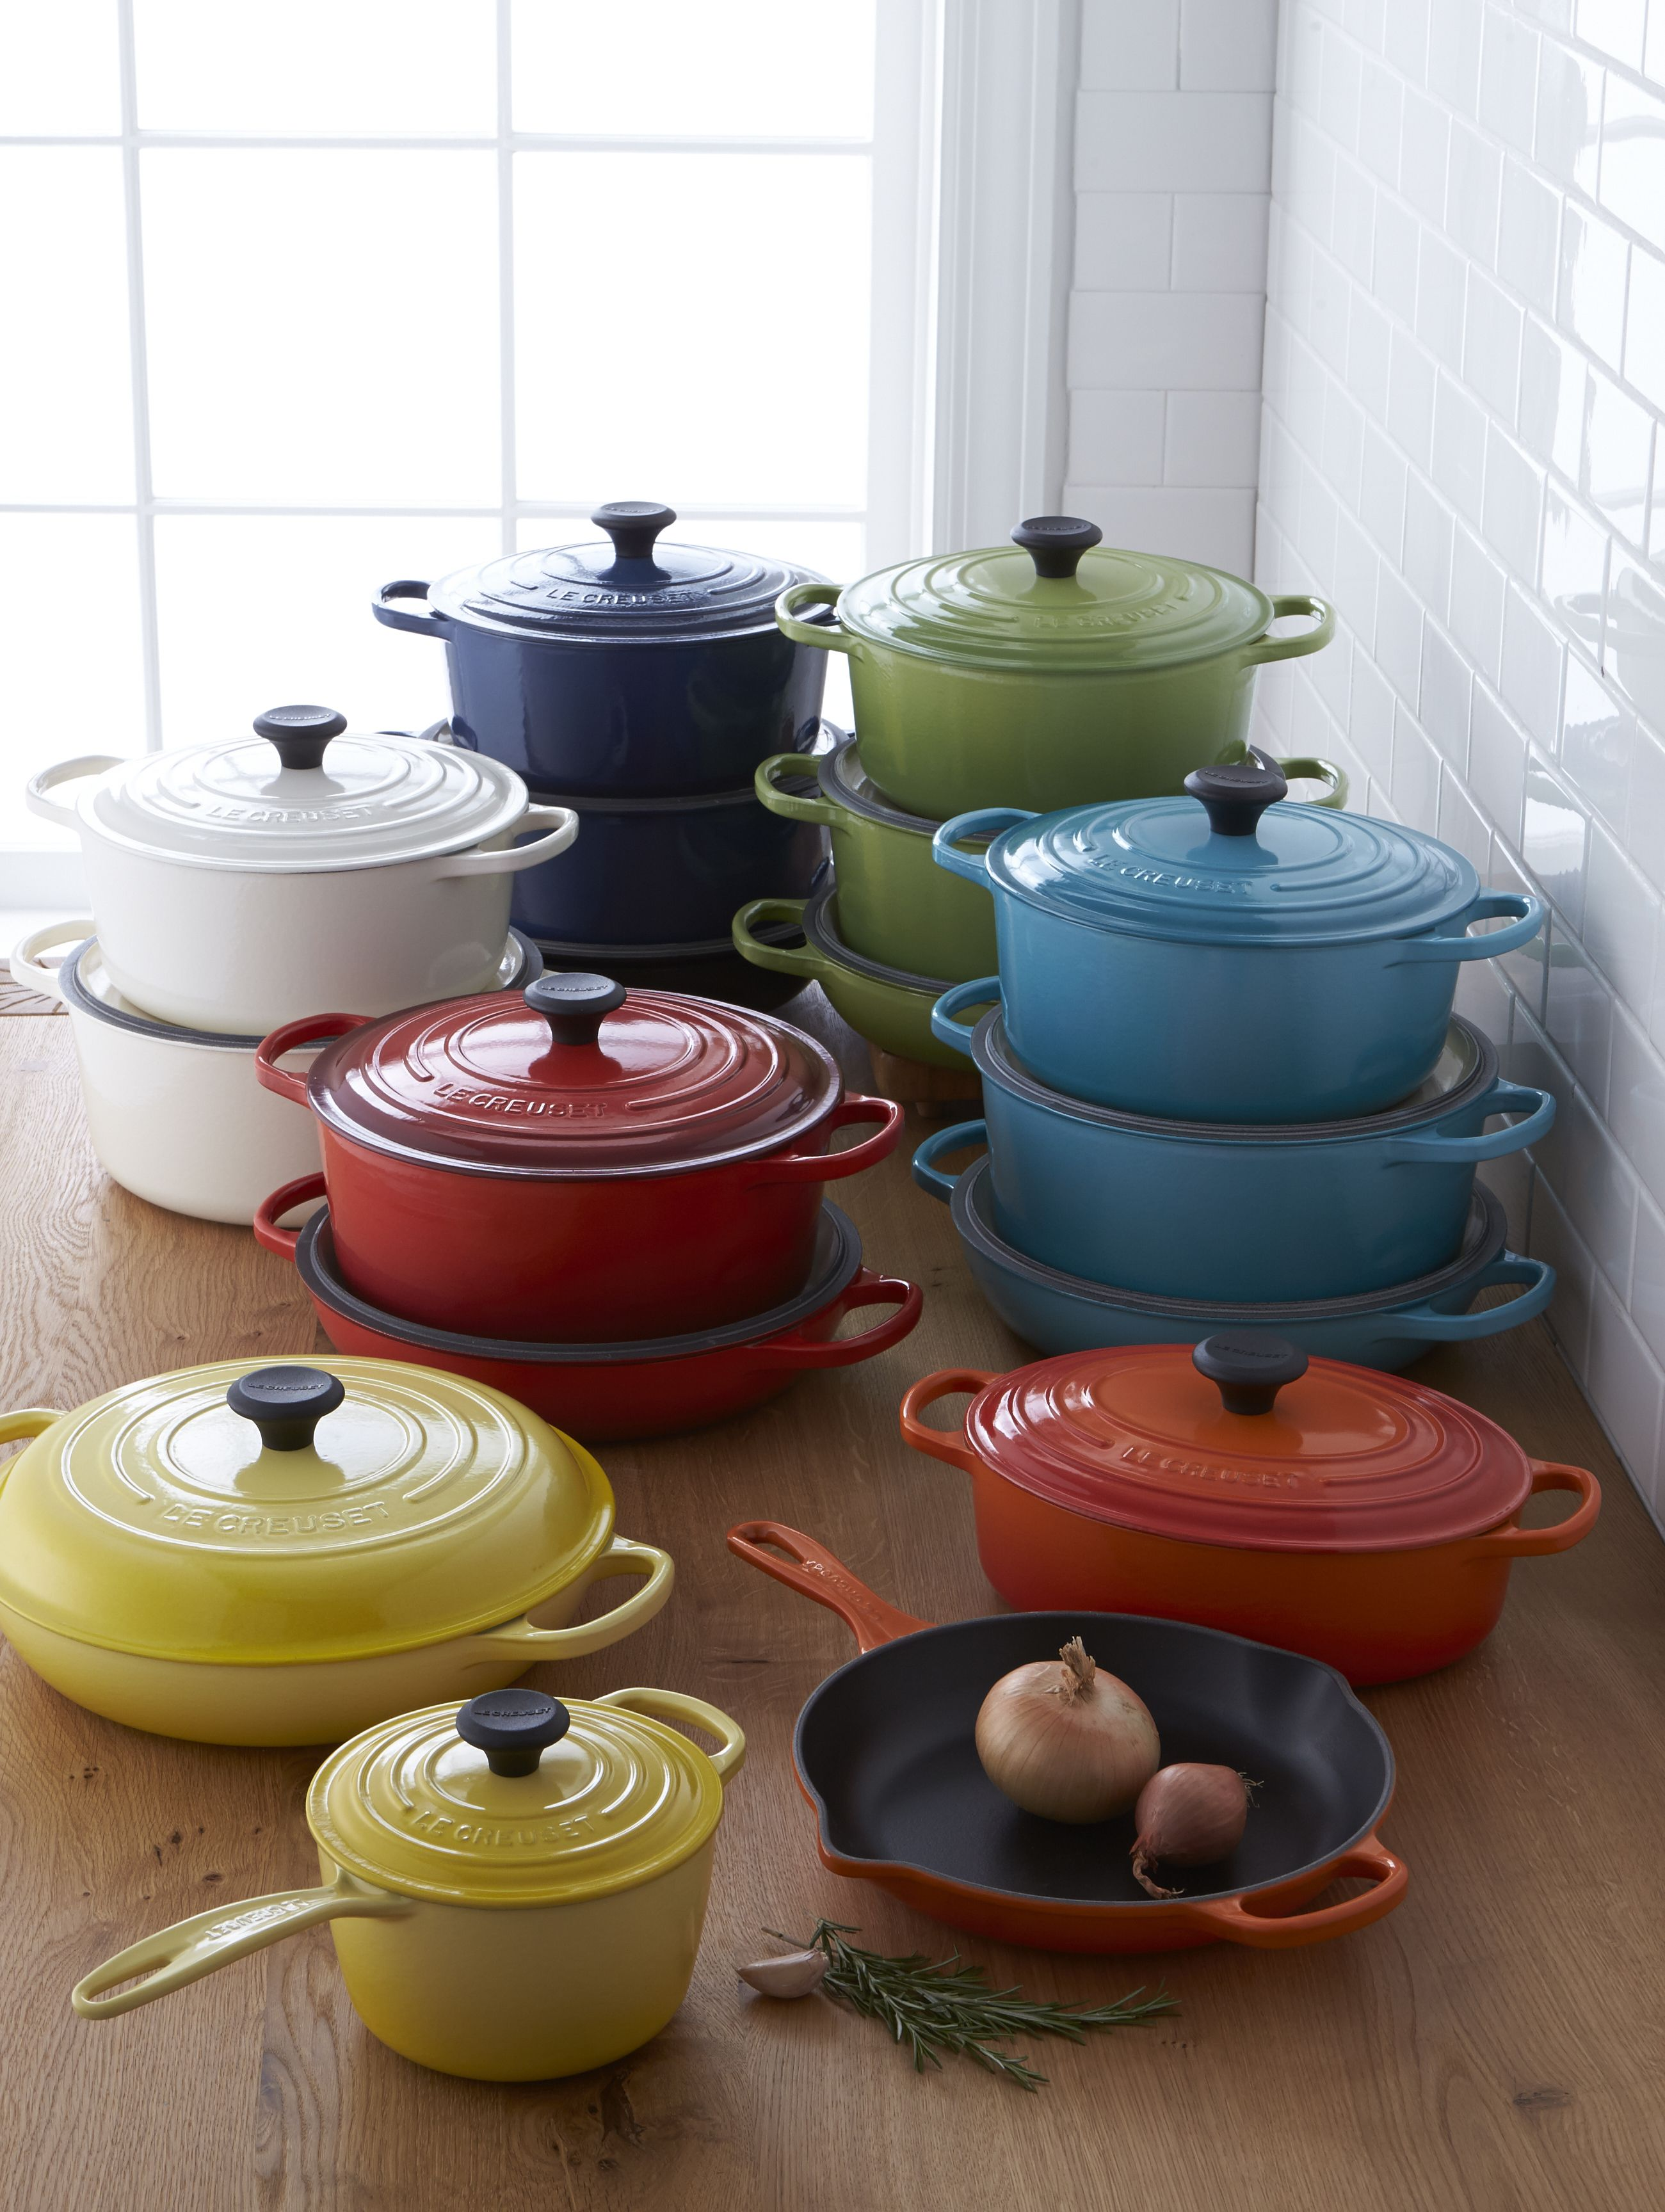 Enameled Cast Iron Le Creuset And More Gourmet Cookware Le Creuset Cookware Creuset